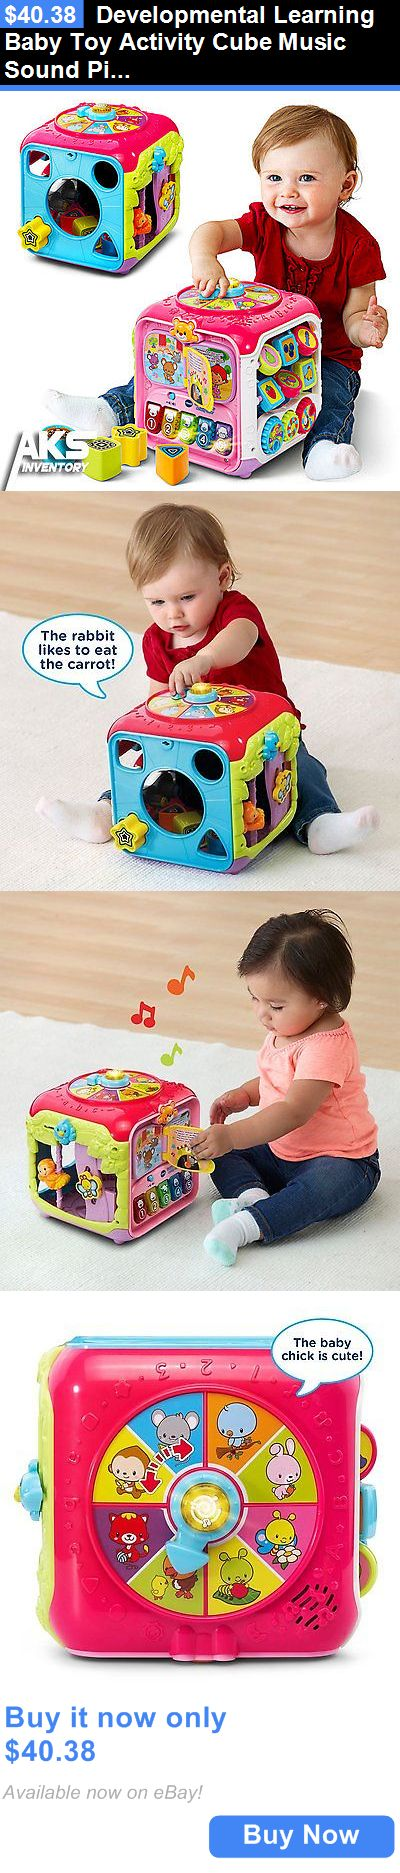 baby kid stuff: Developmental Learning Baby Toy Activity Cube Music Sound Pink Kids Play Fun New BUY IT NOW ONLY: $40.38